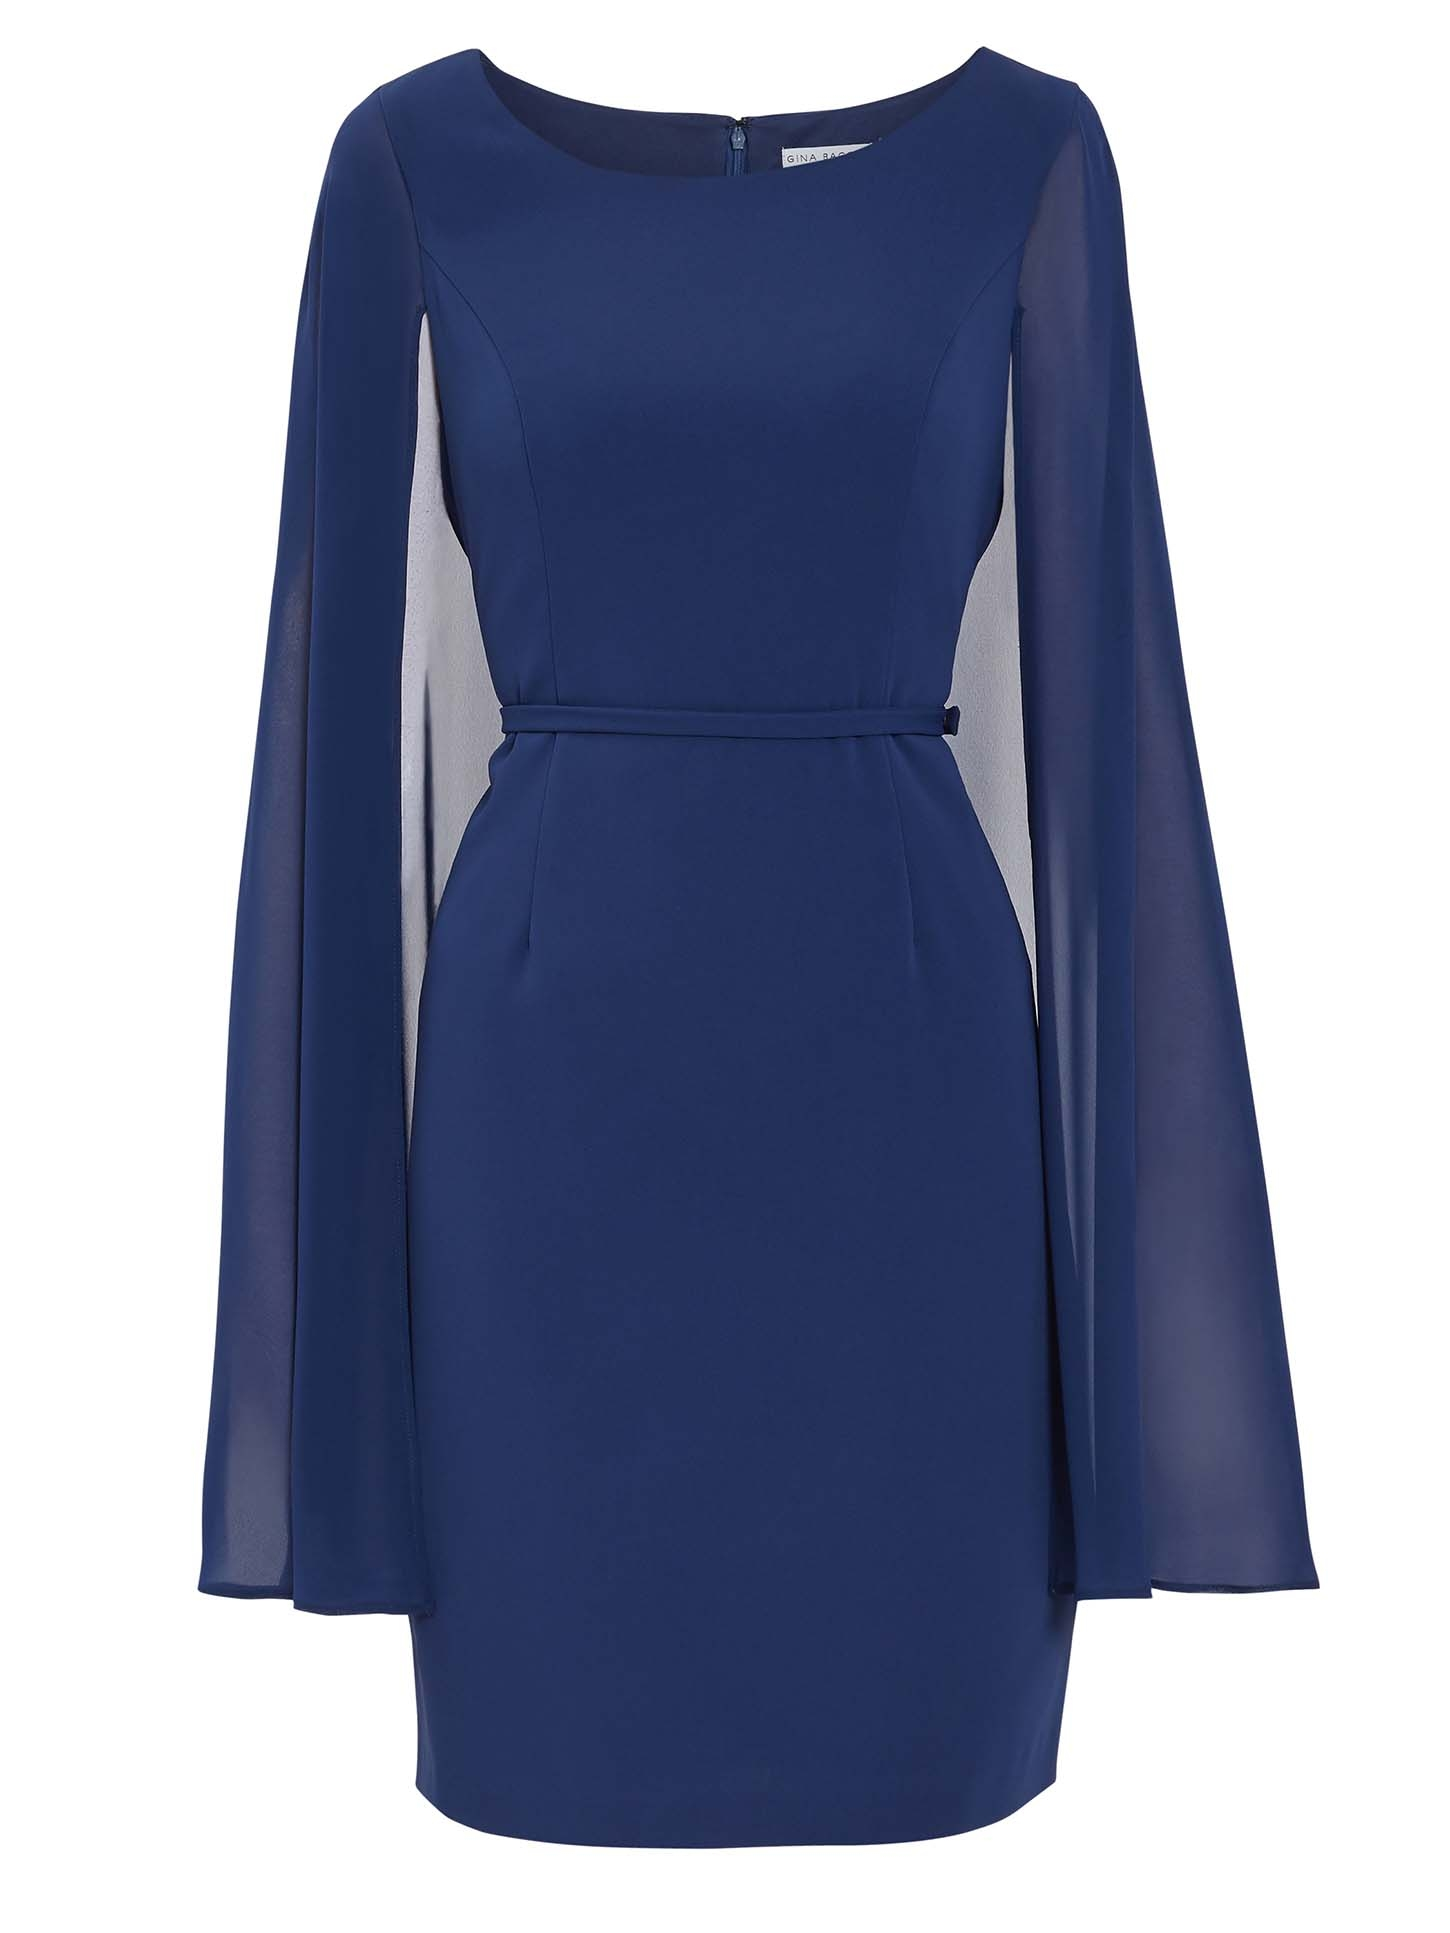 Bevin Crepe And Chiffon Cape Dress